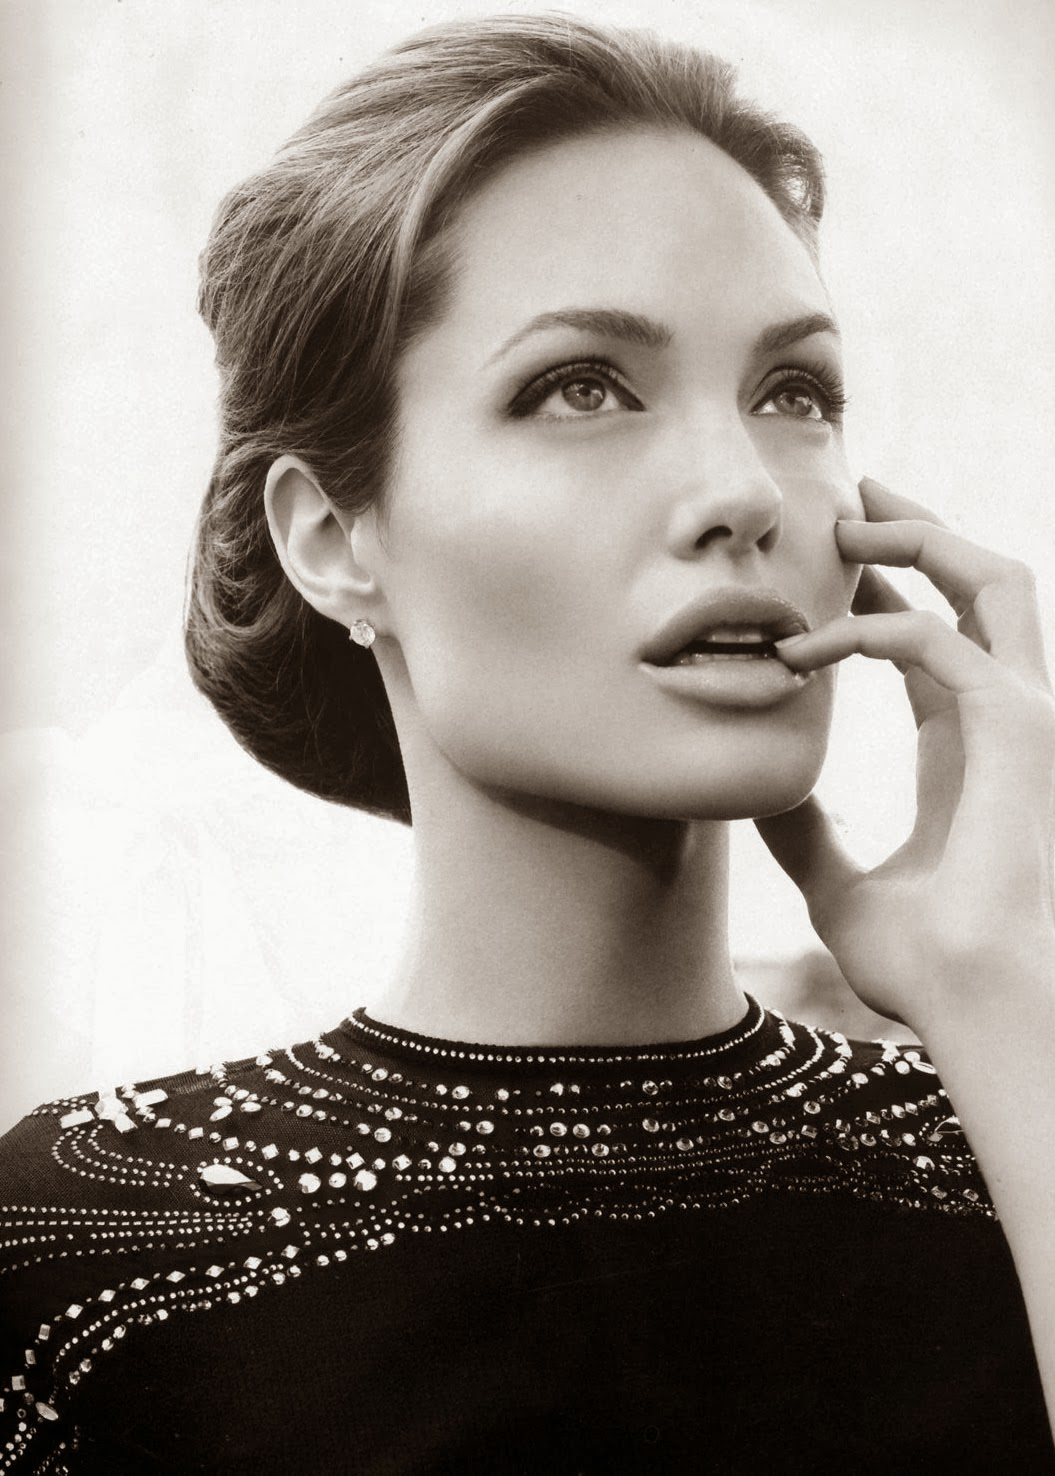 Angelina Jolie Look Using All Drugstore Makeup: A Serene Life For Me: It's Time To Give Angelina Jolie A